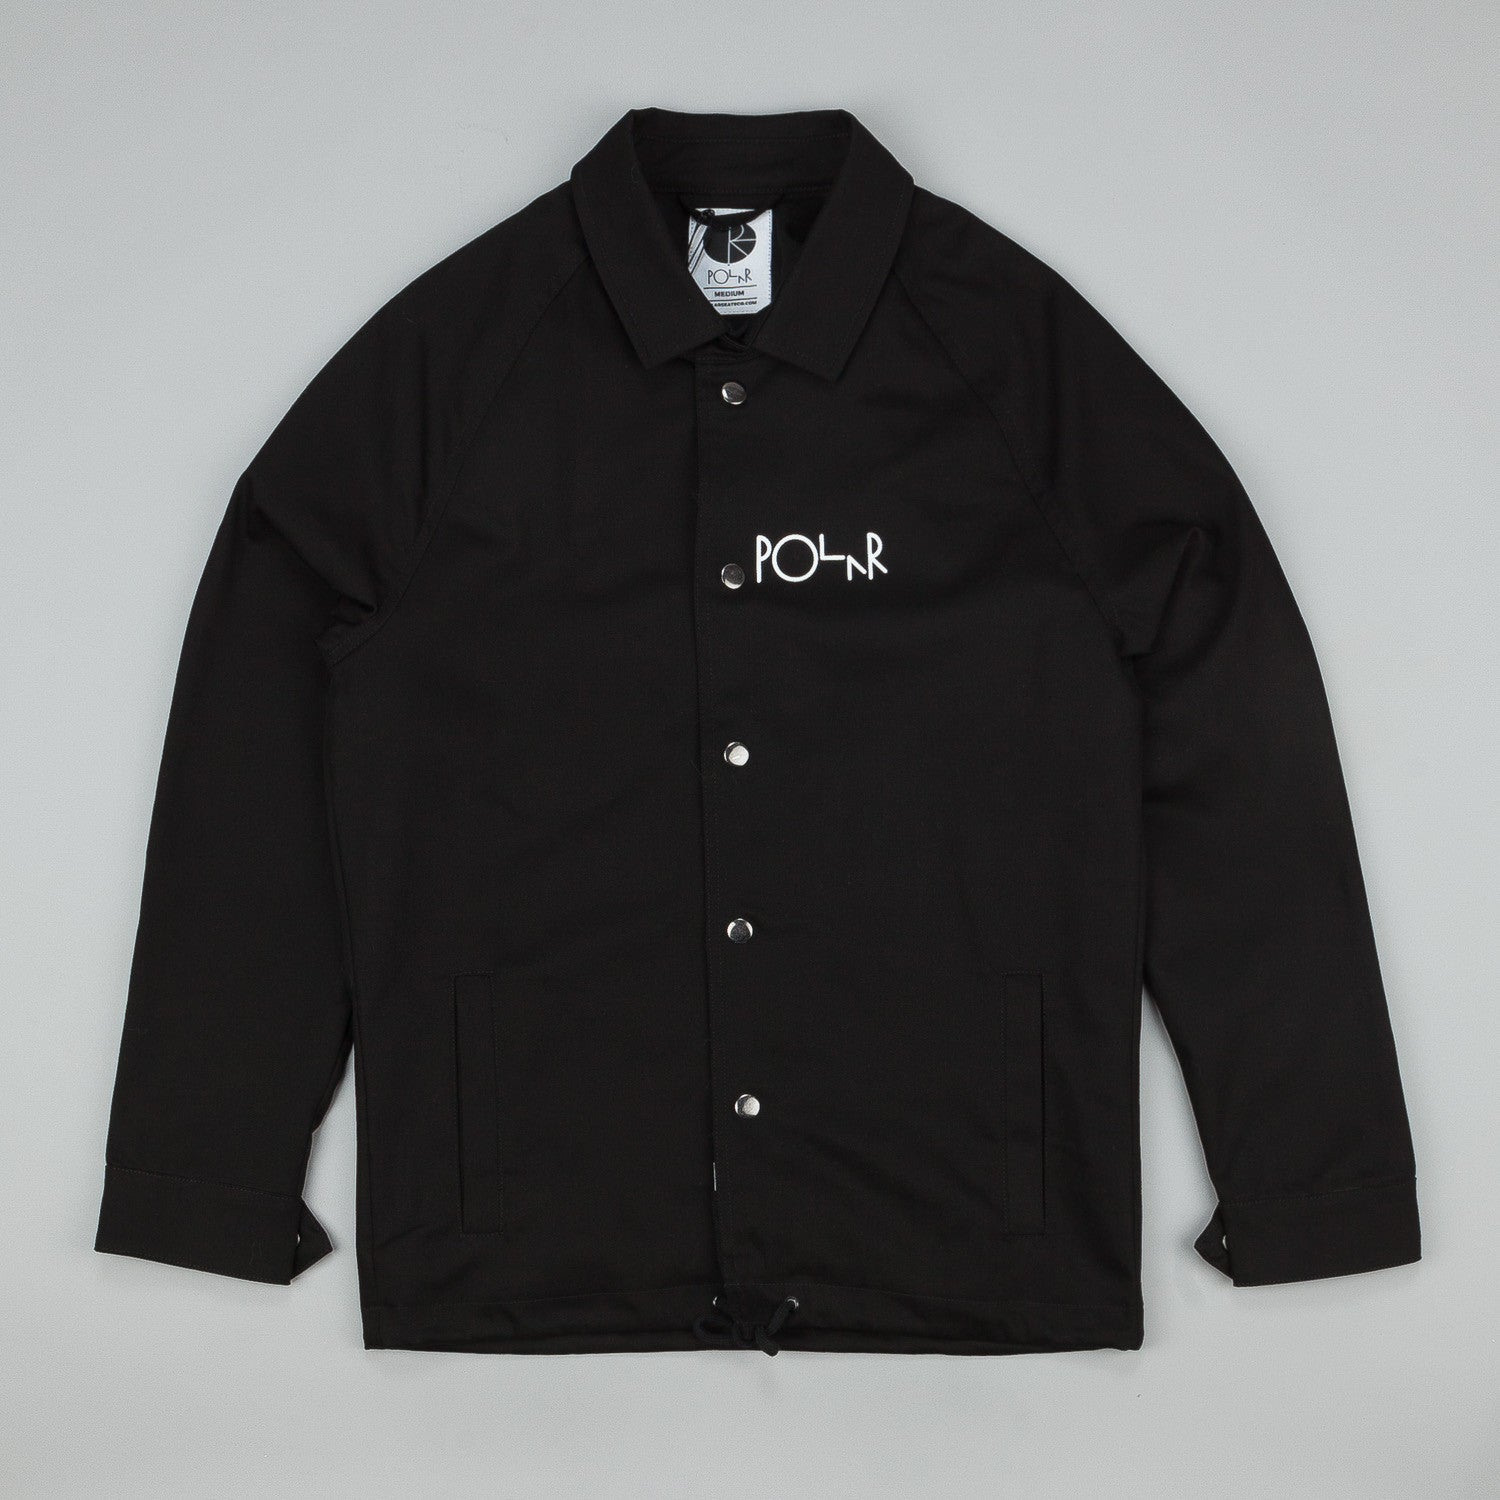 Polar Stroke Logo Coach Jacket Black